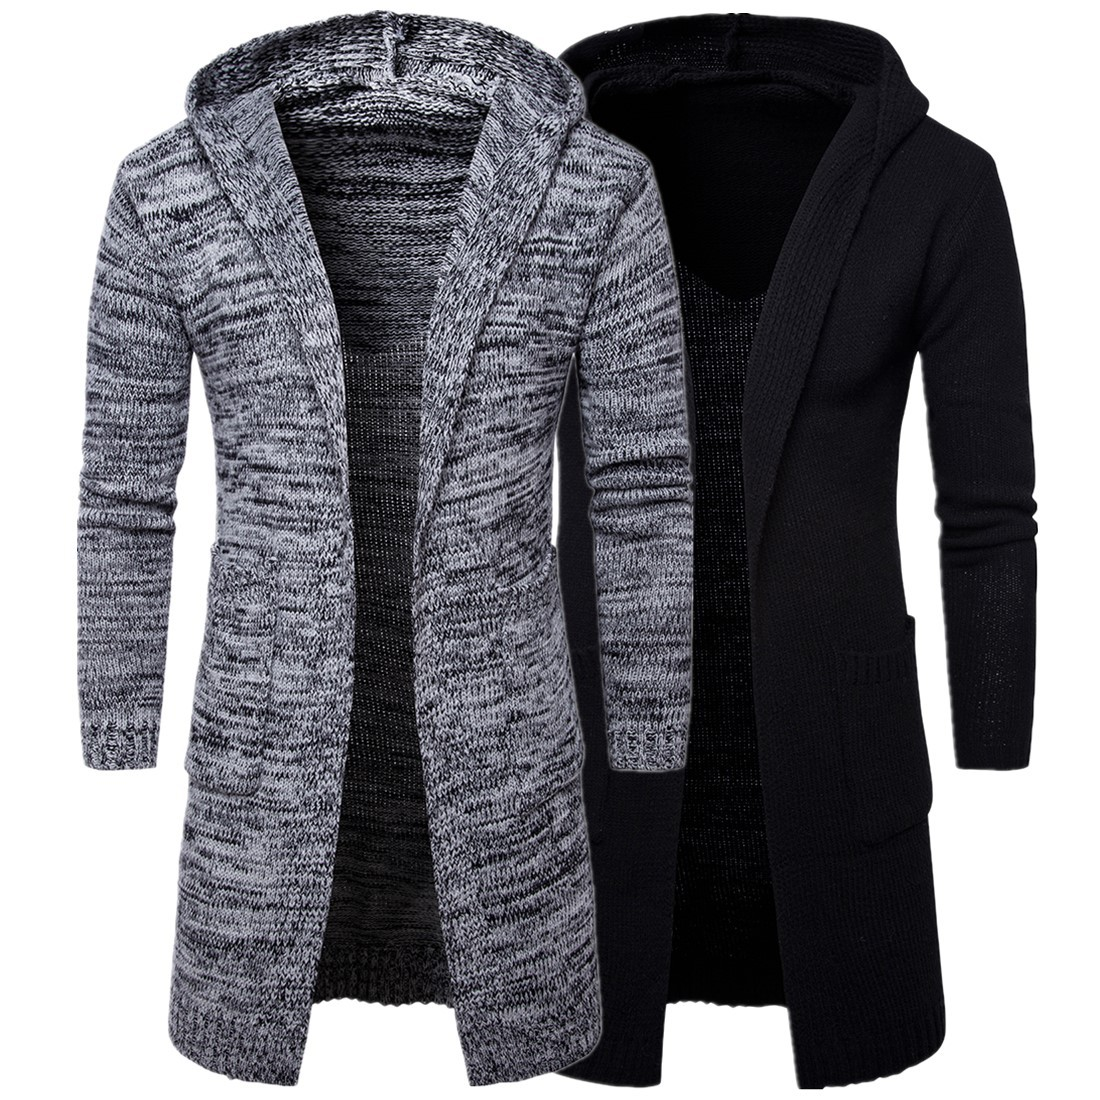 Solid Hooded Cardigan Autumn Men Sweater Fashion Korean Style Long Sleeve Male Long Cardigan Sweater Slim fit Casual Winter Hooded Sweater